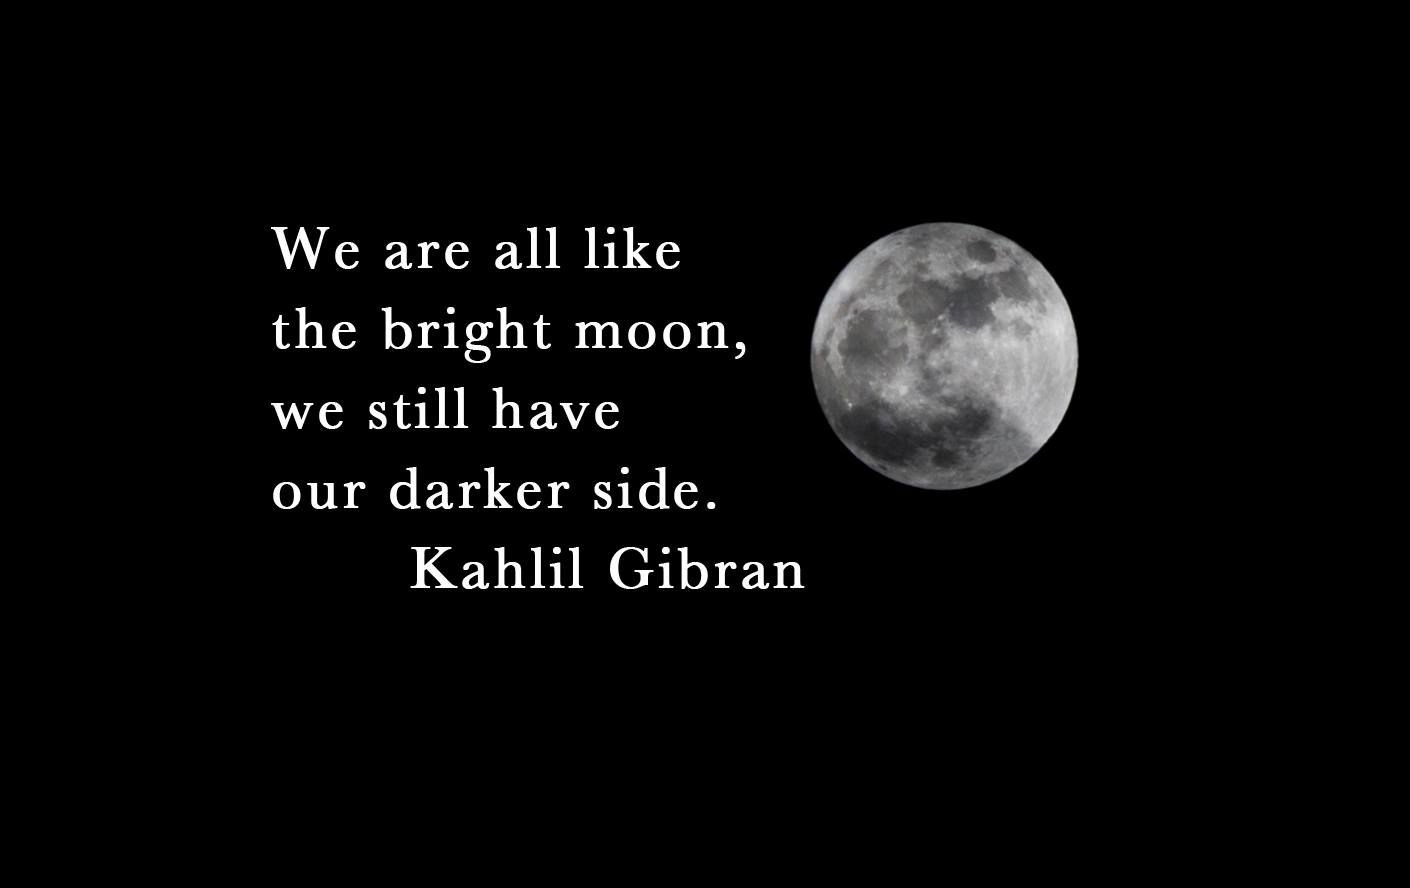 Dark Side Of The Moon Khalil Gibran Quotes Kahlil Gibran Quotes Moon Quotes